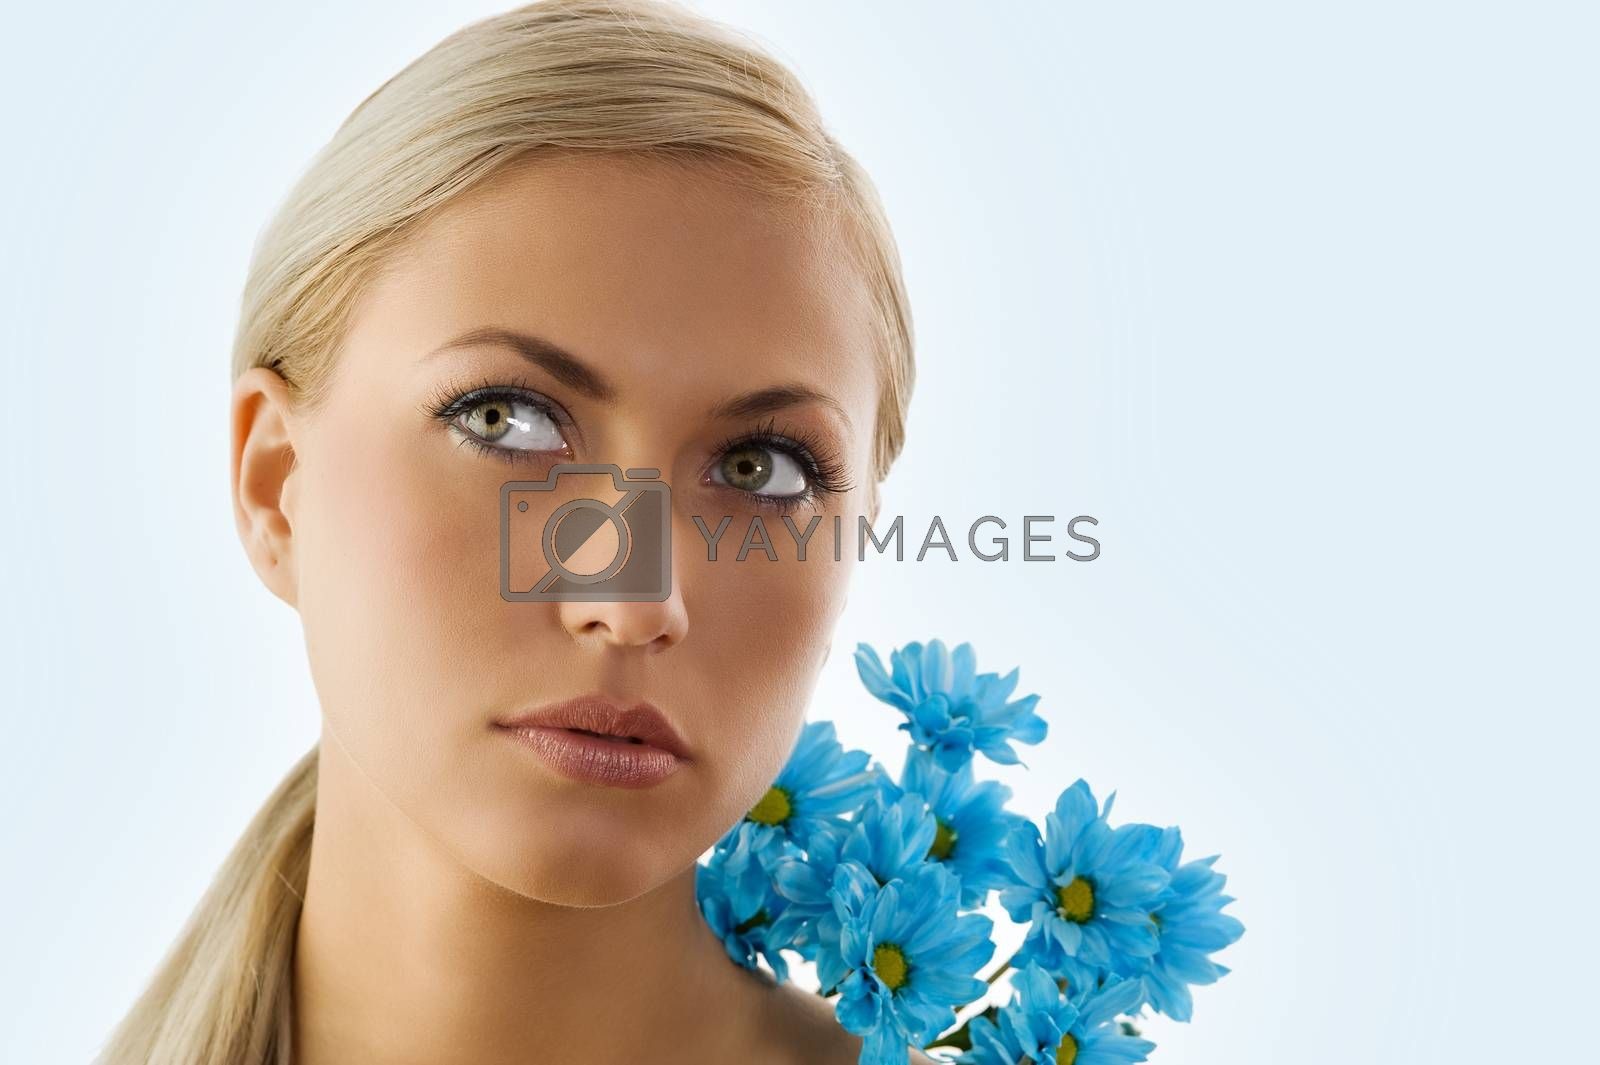 Royalty free image of blond girl and blue daisy by fotoCD